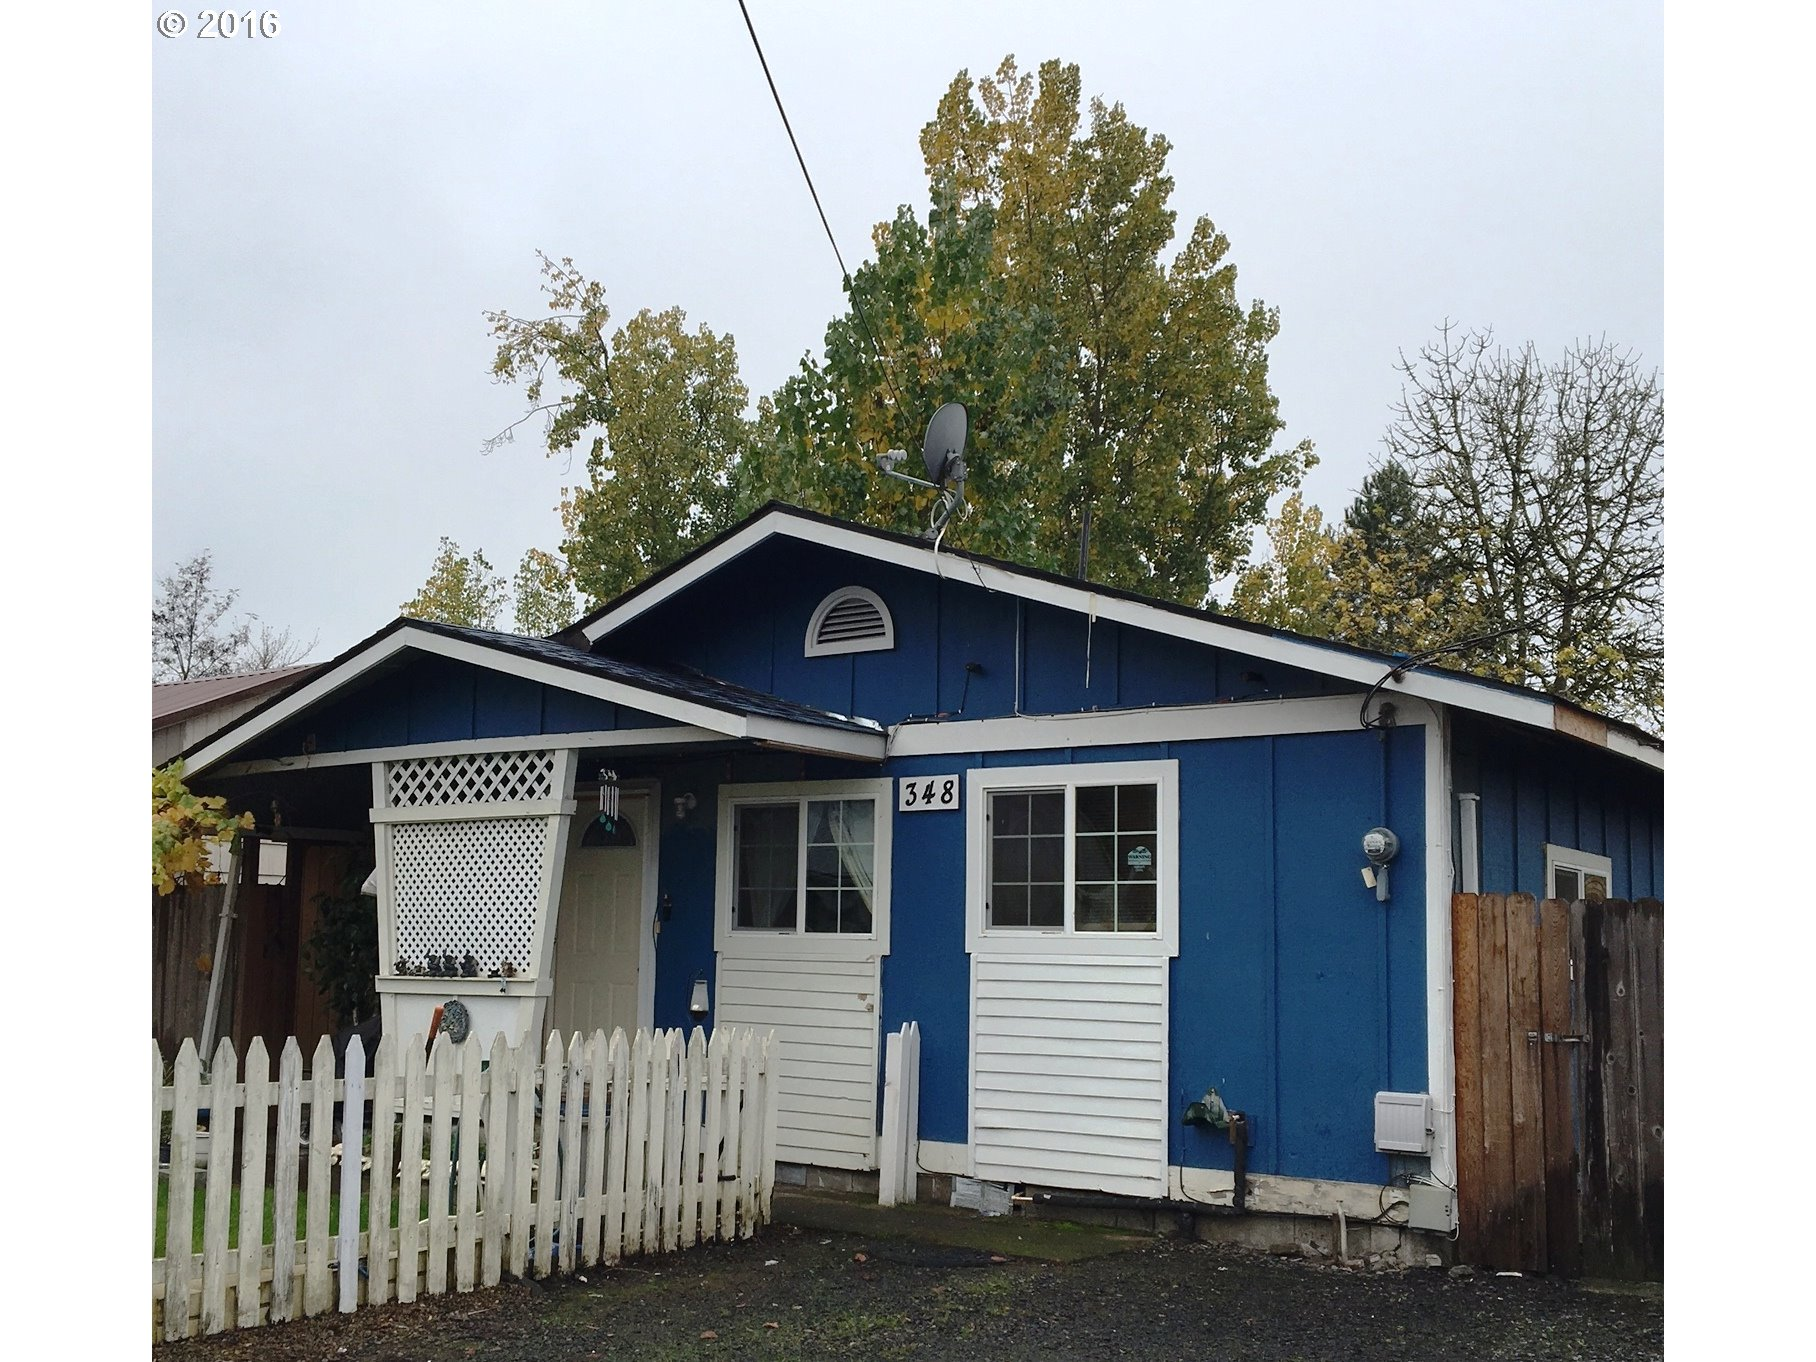 348 S 43RD ST, Springfield, OR 97478